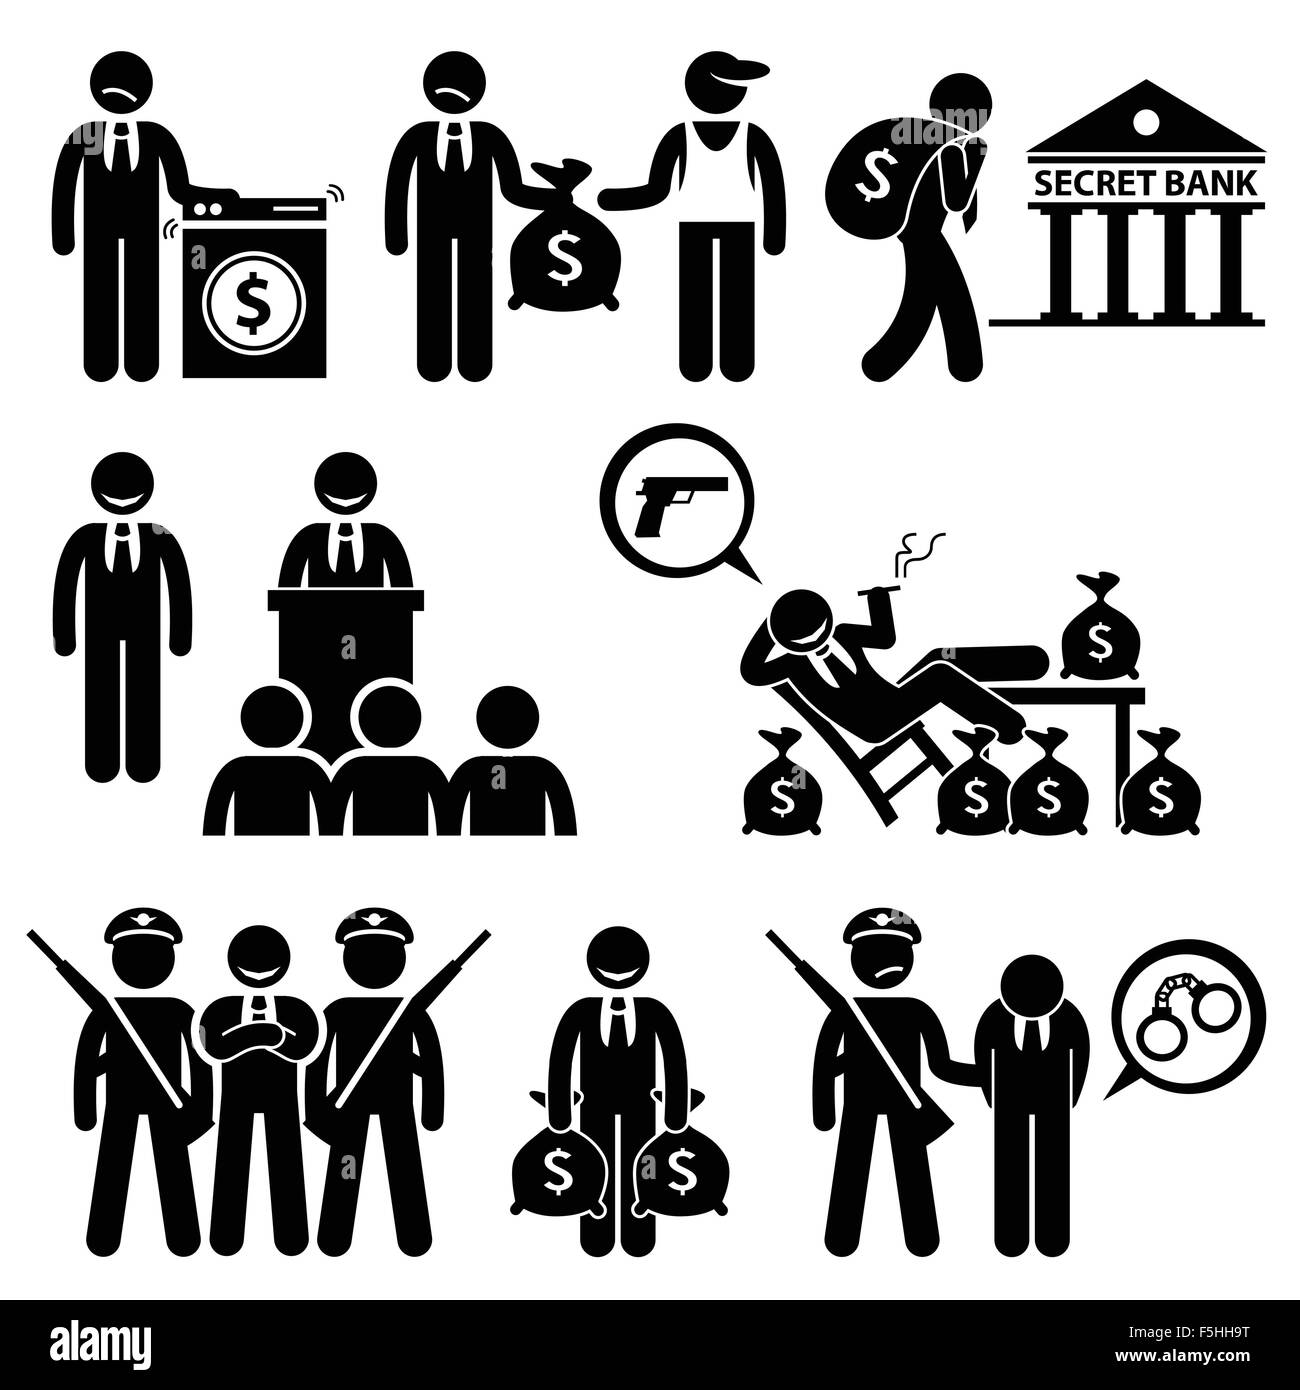 Dirty Money Laundering Illegal Activity Politic Crime Stick Figure Pictogram Icons - Stock Image